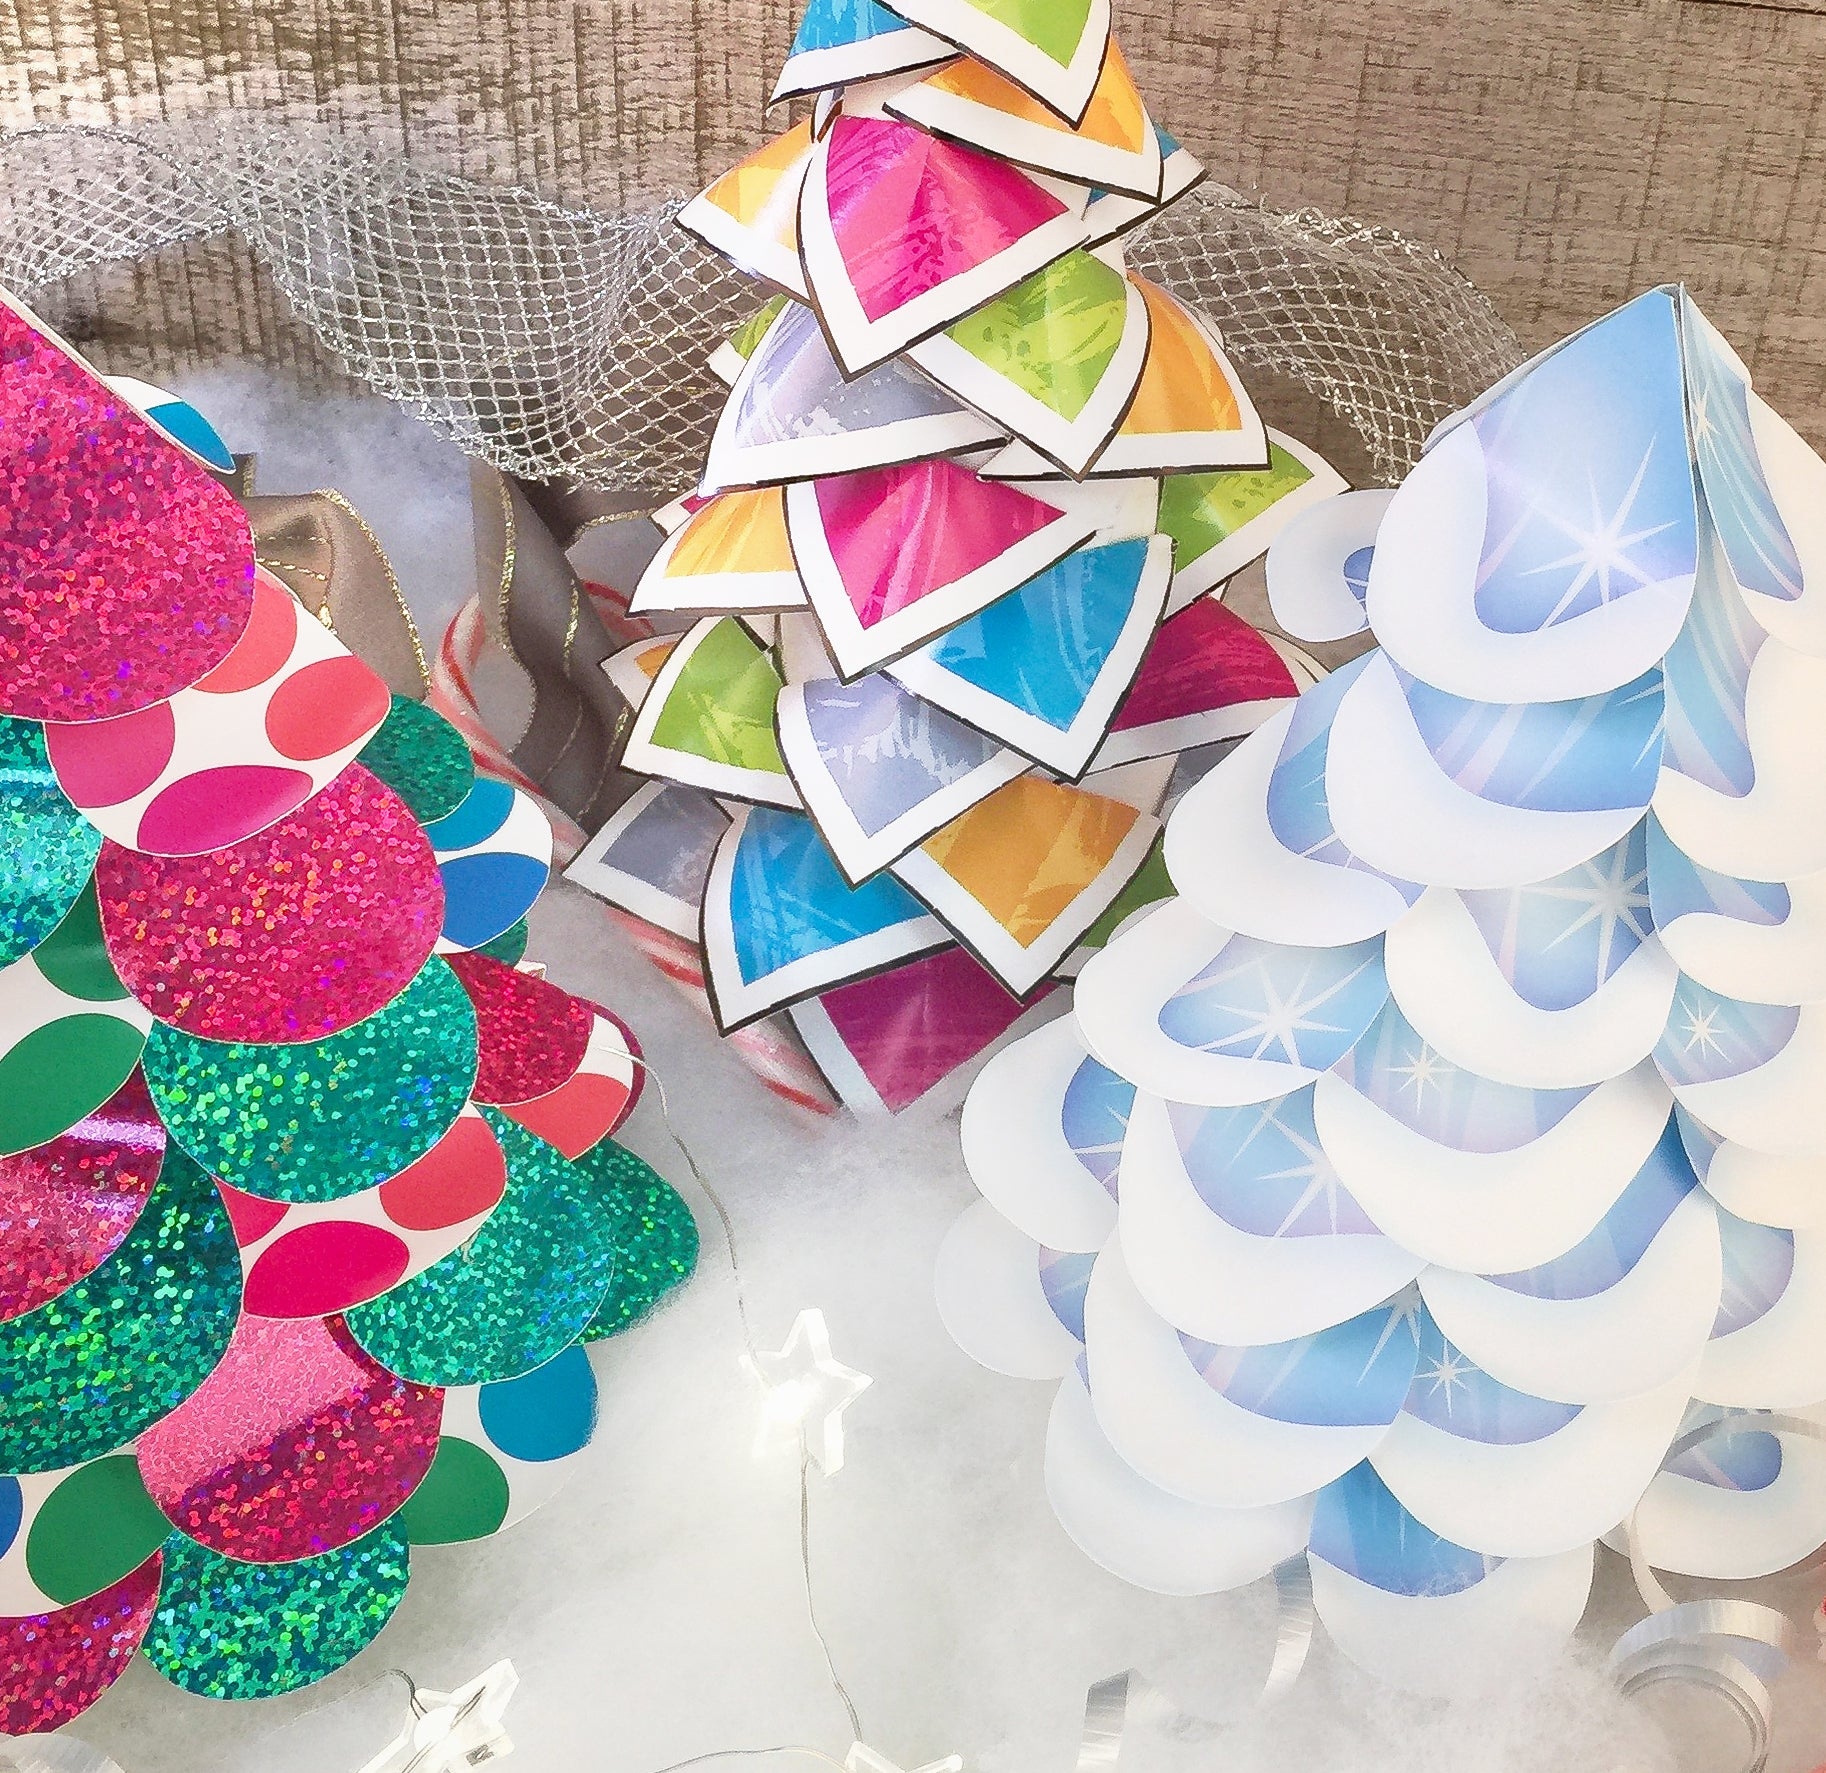 Tabletop paper Christmas trees decoration DIY project